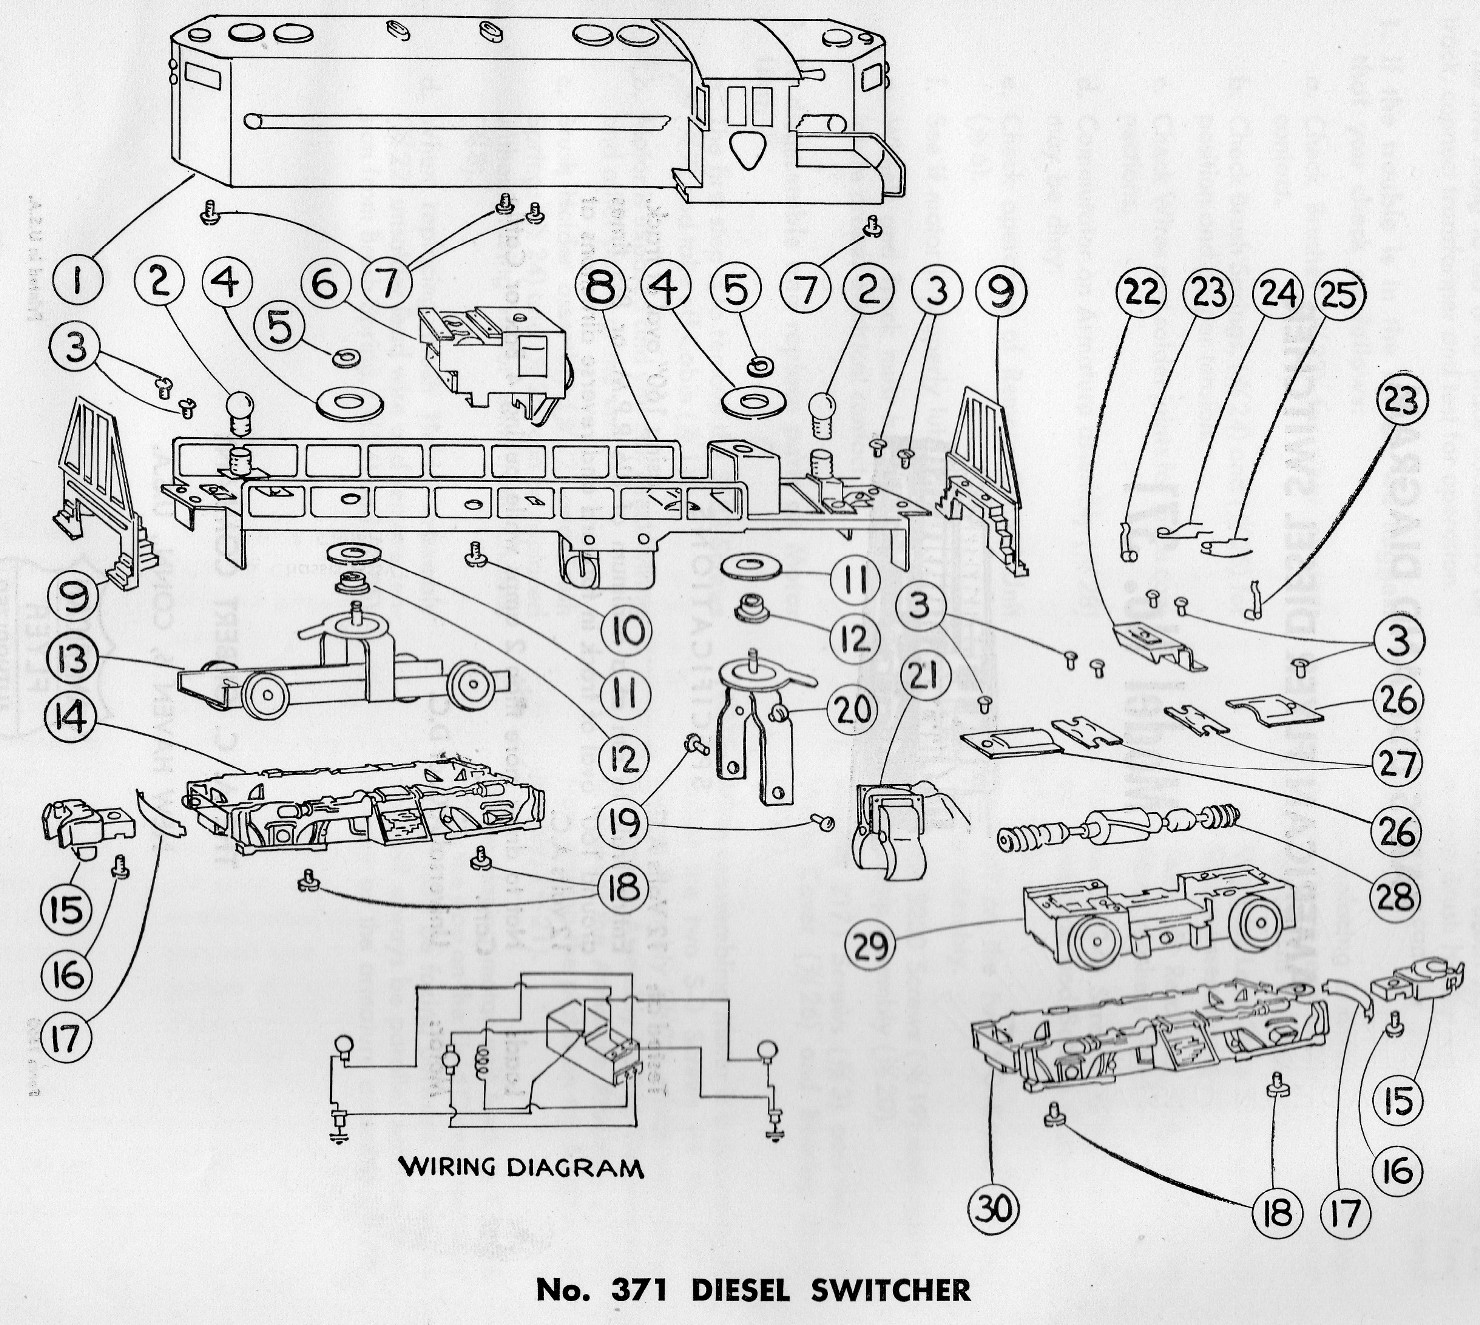 American Flyer Diesel Switcher No. 371 Parts List & Diagram - Page 2